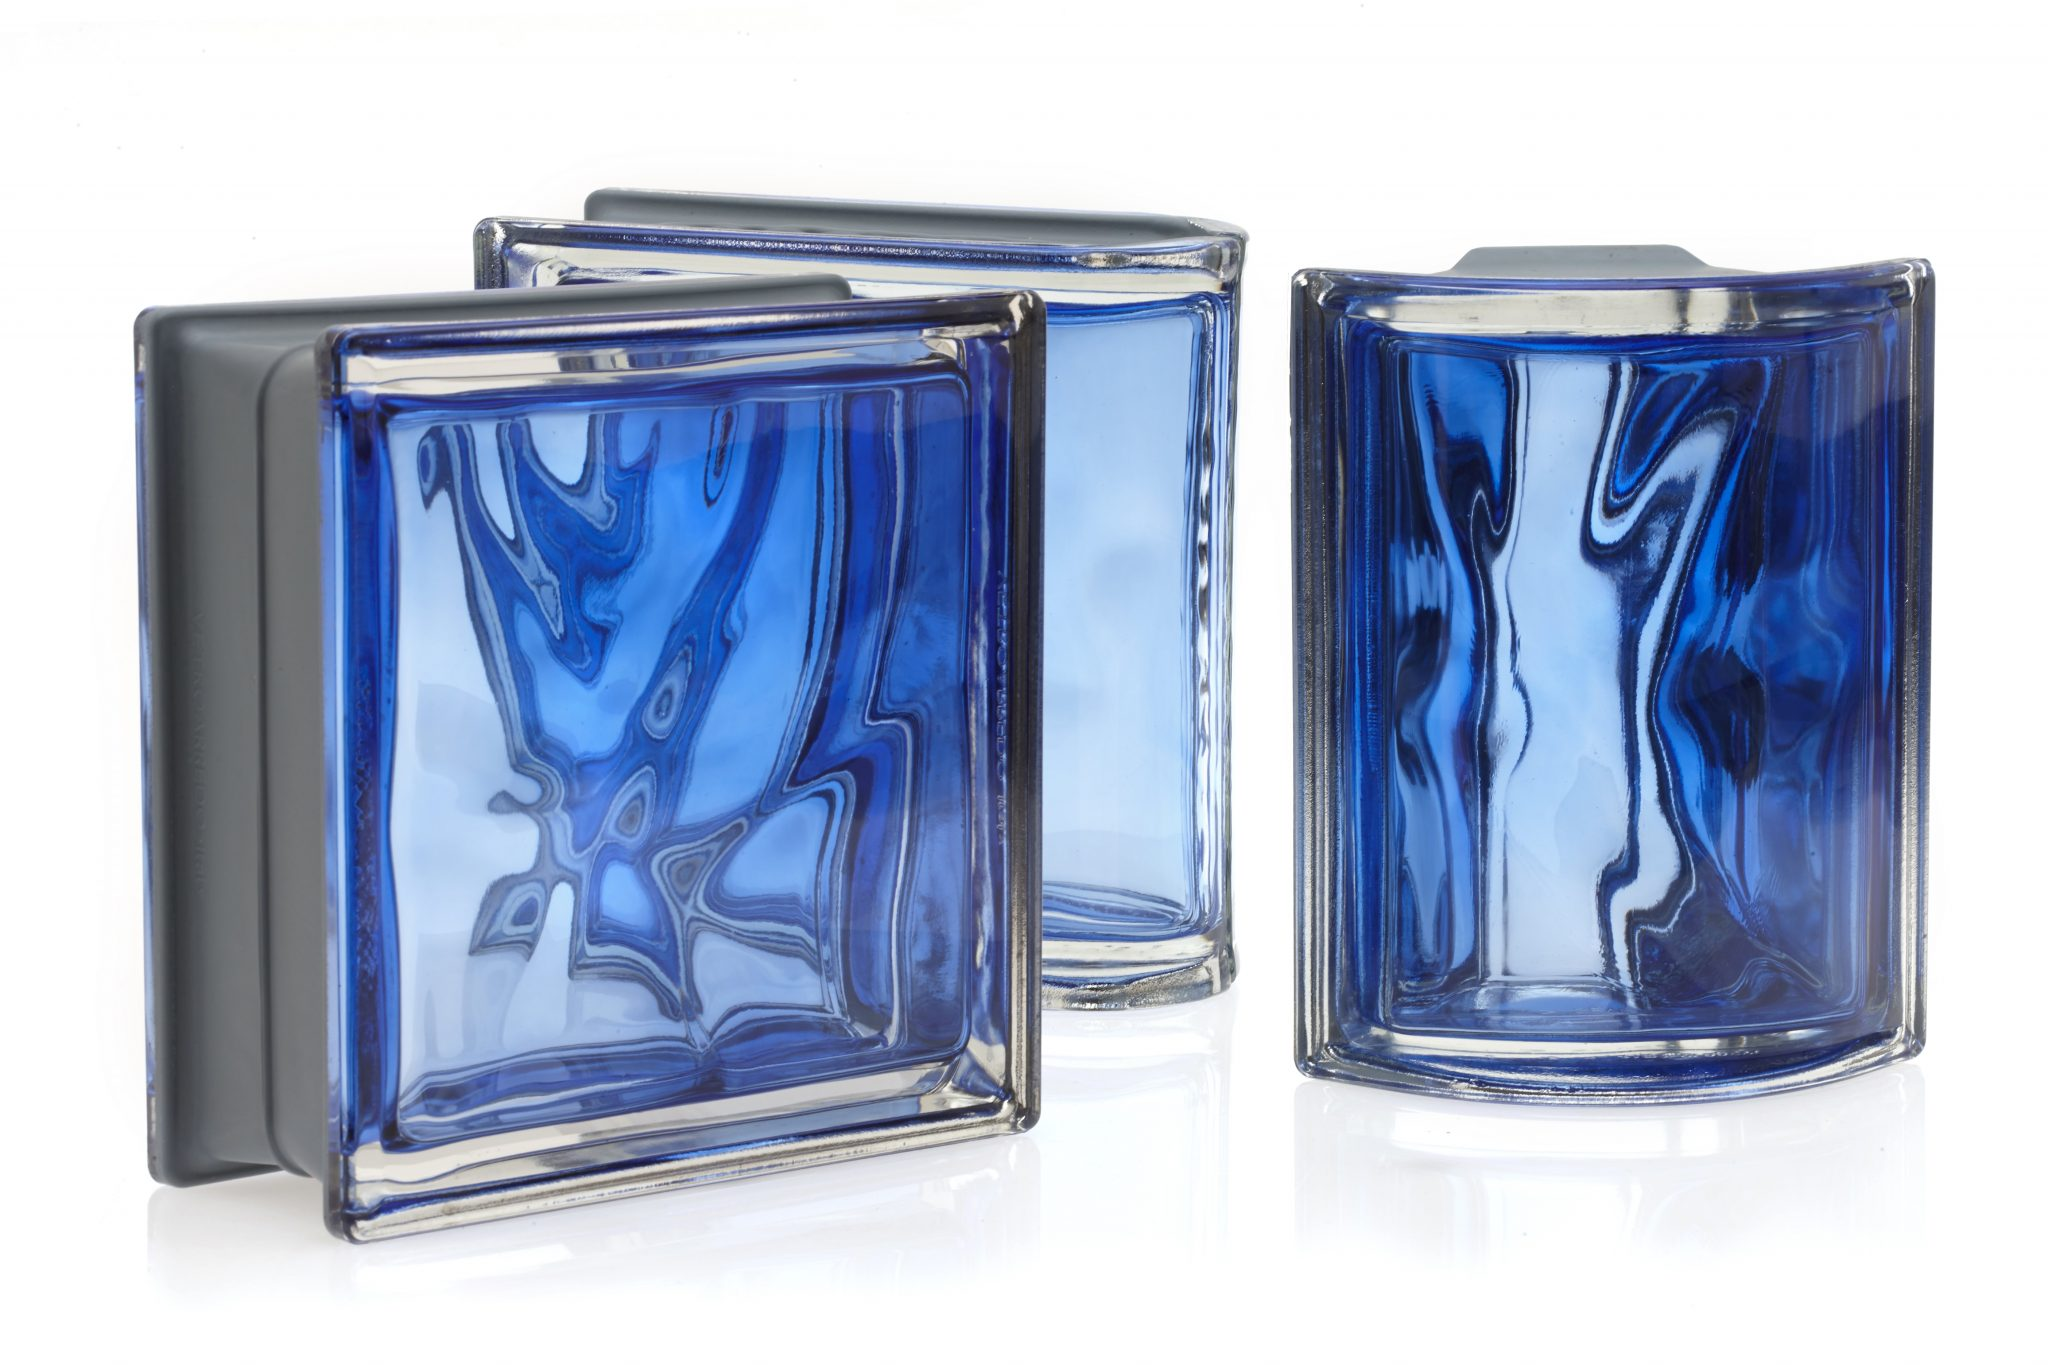 Diy Glass Block Projects